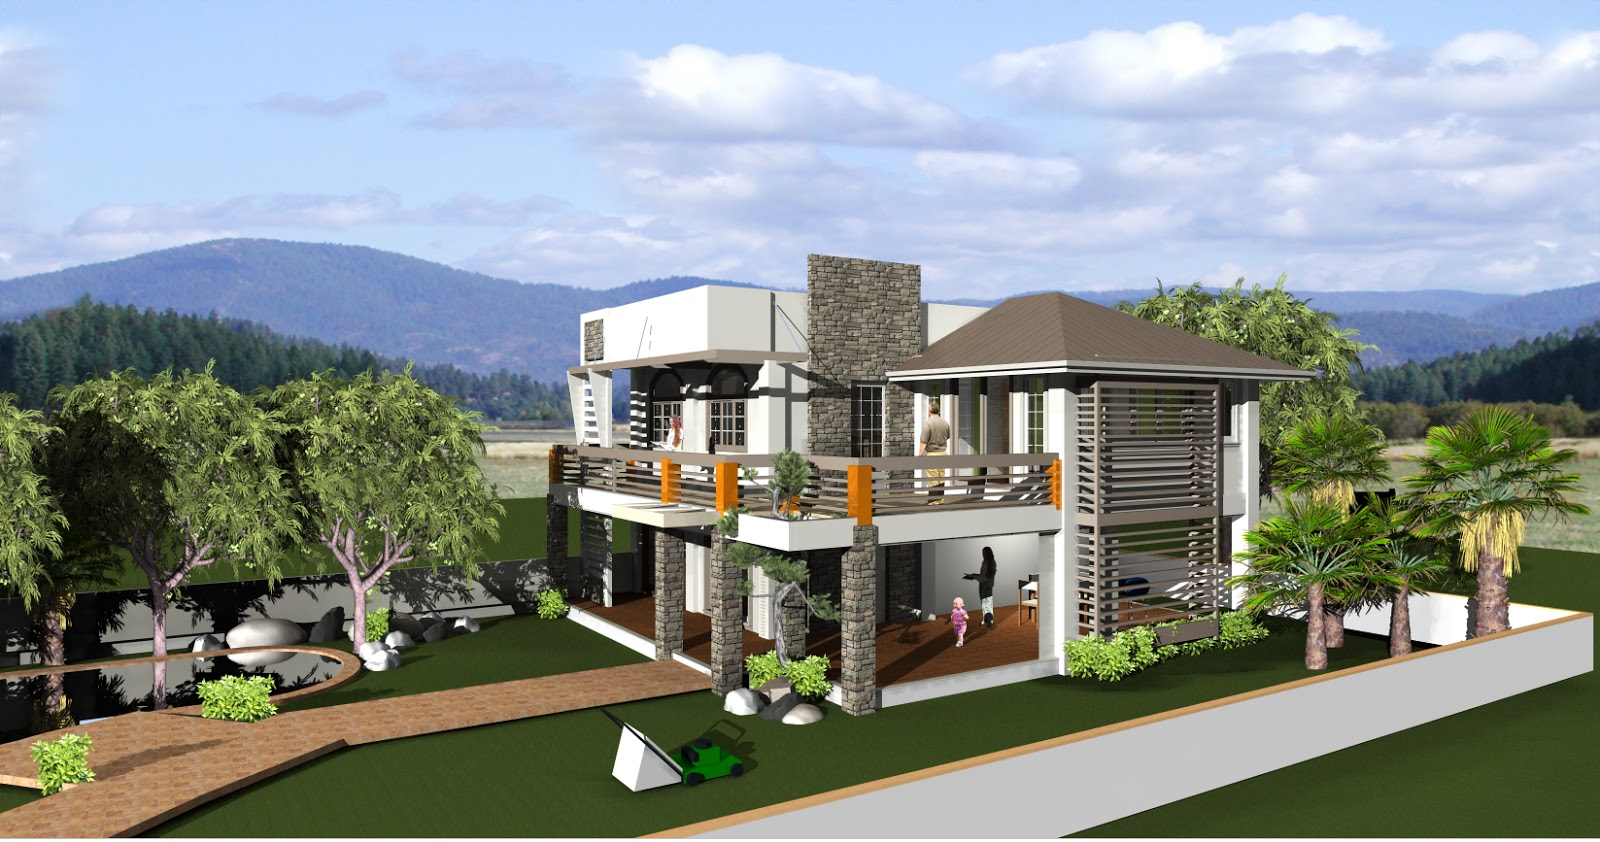 Erecre group realty design and construction for Philippine home designs ideas